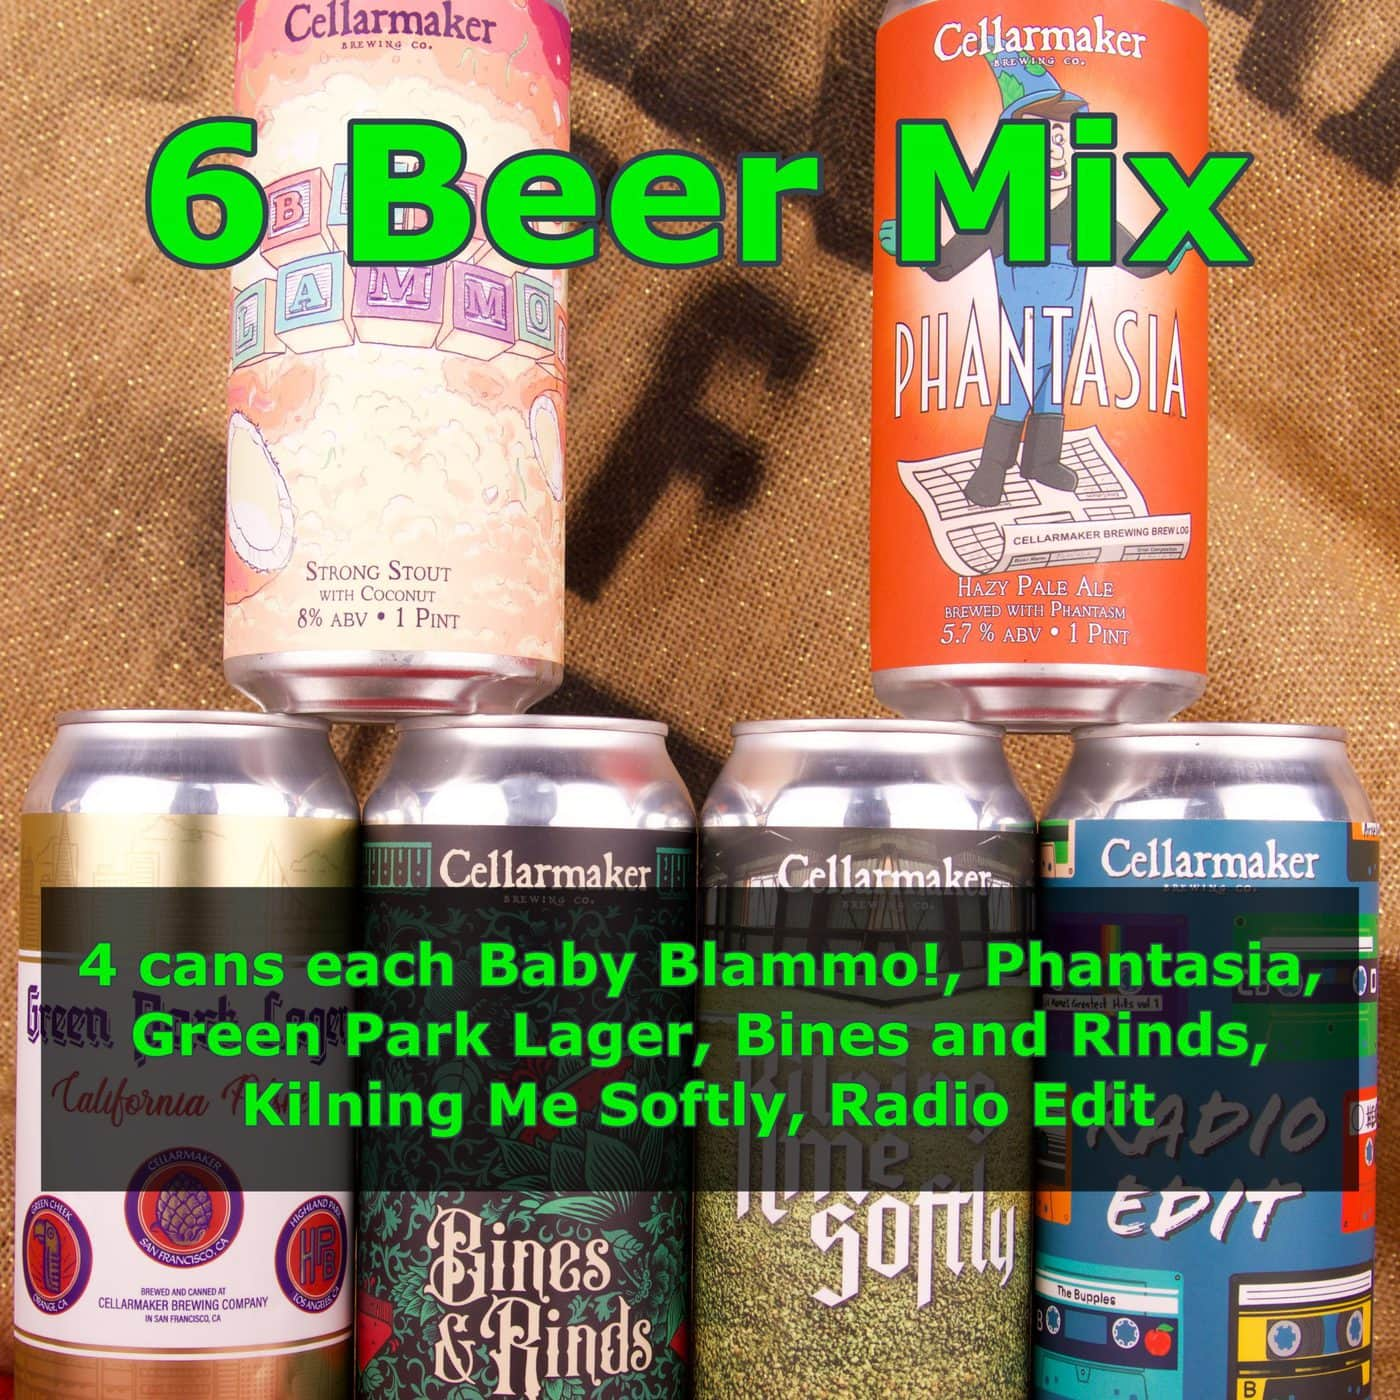 FULL CASE 24 CANS 6 BEER MIX – 4 Kilning Me Softly IPA, 4 Green Park Lager, 4 Radio Edit Pale Ale, 4 Bines And Rinds Watermelon IPA, 4 Baby Blammo Coconut Stout And 4 Phantasia Pale Ale – Shipping Out Tuesday 6/15 For Next Day Delivery*